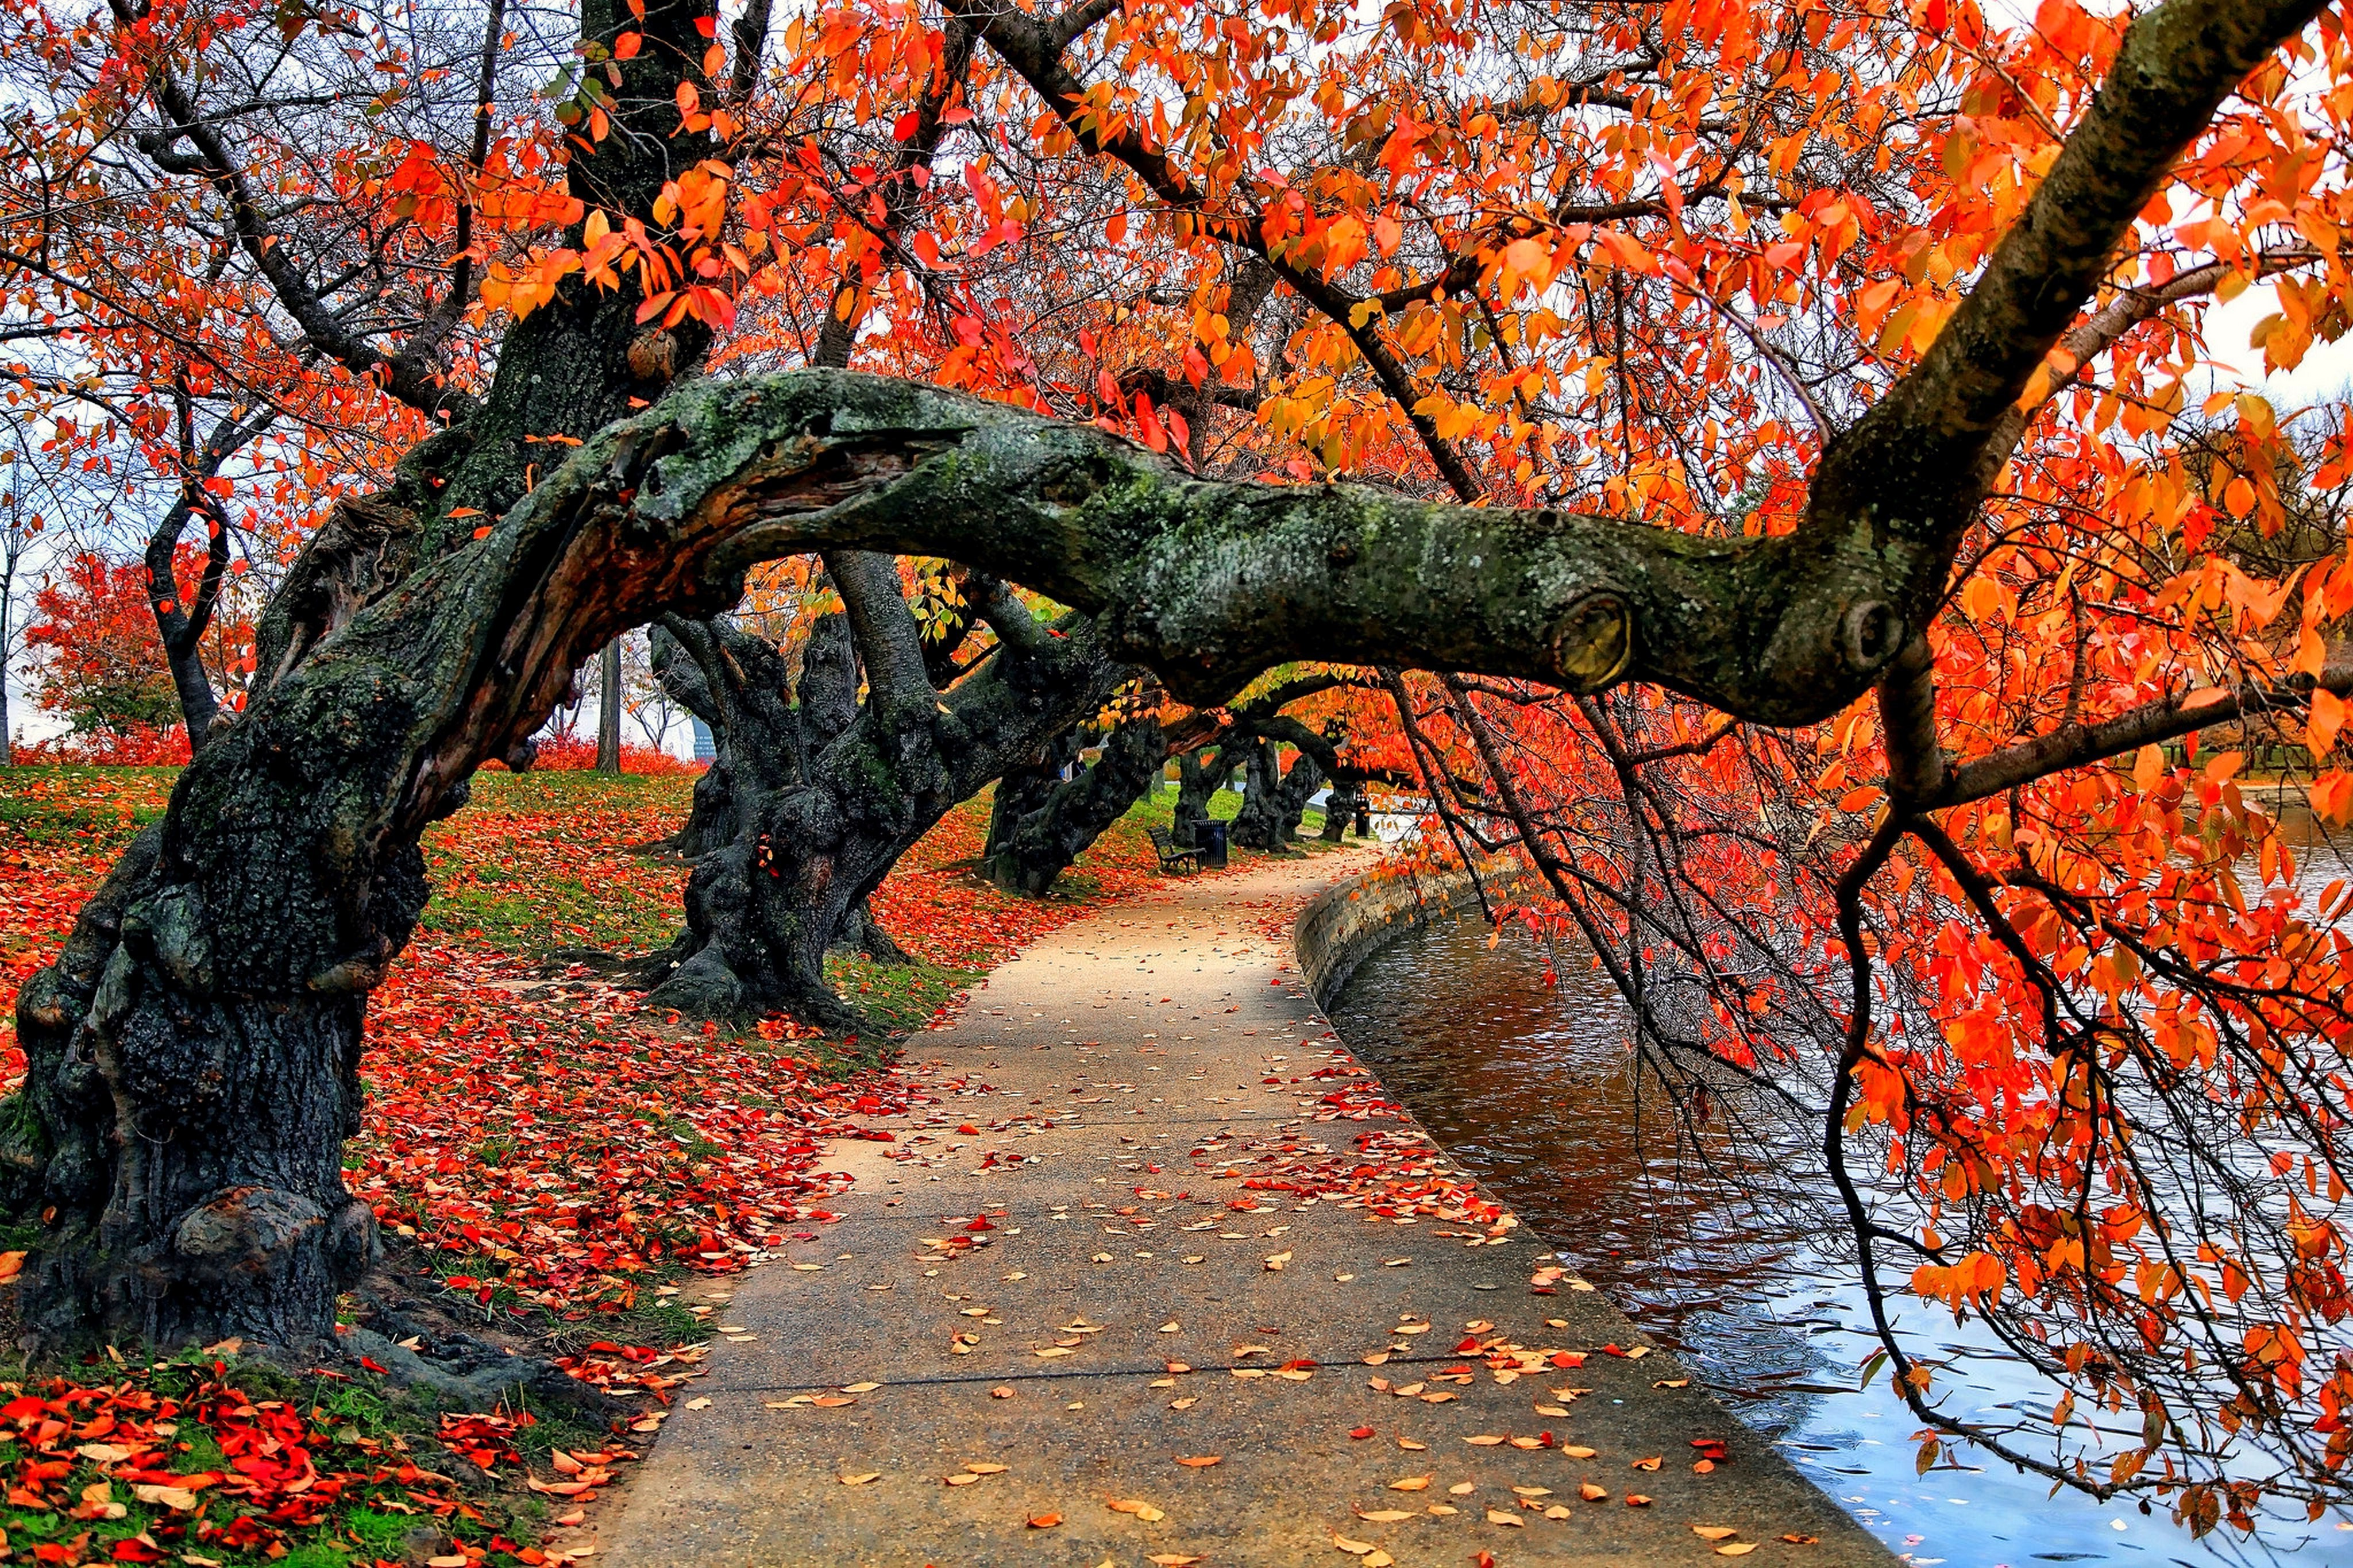 Fall Wallpaper Backgrounds Pumpkins Nature Trees Fall Leaves Red Path Park Water Bench